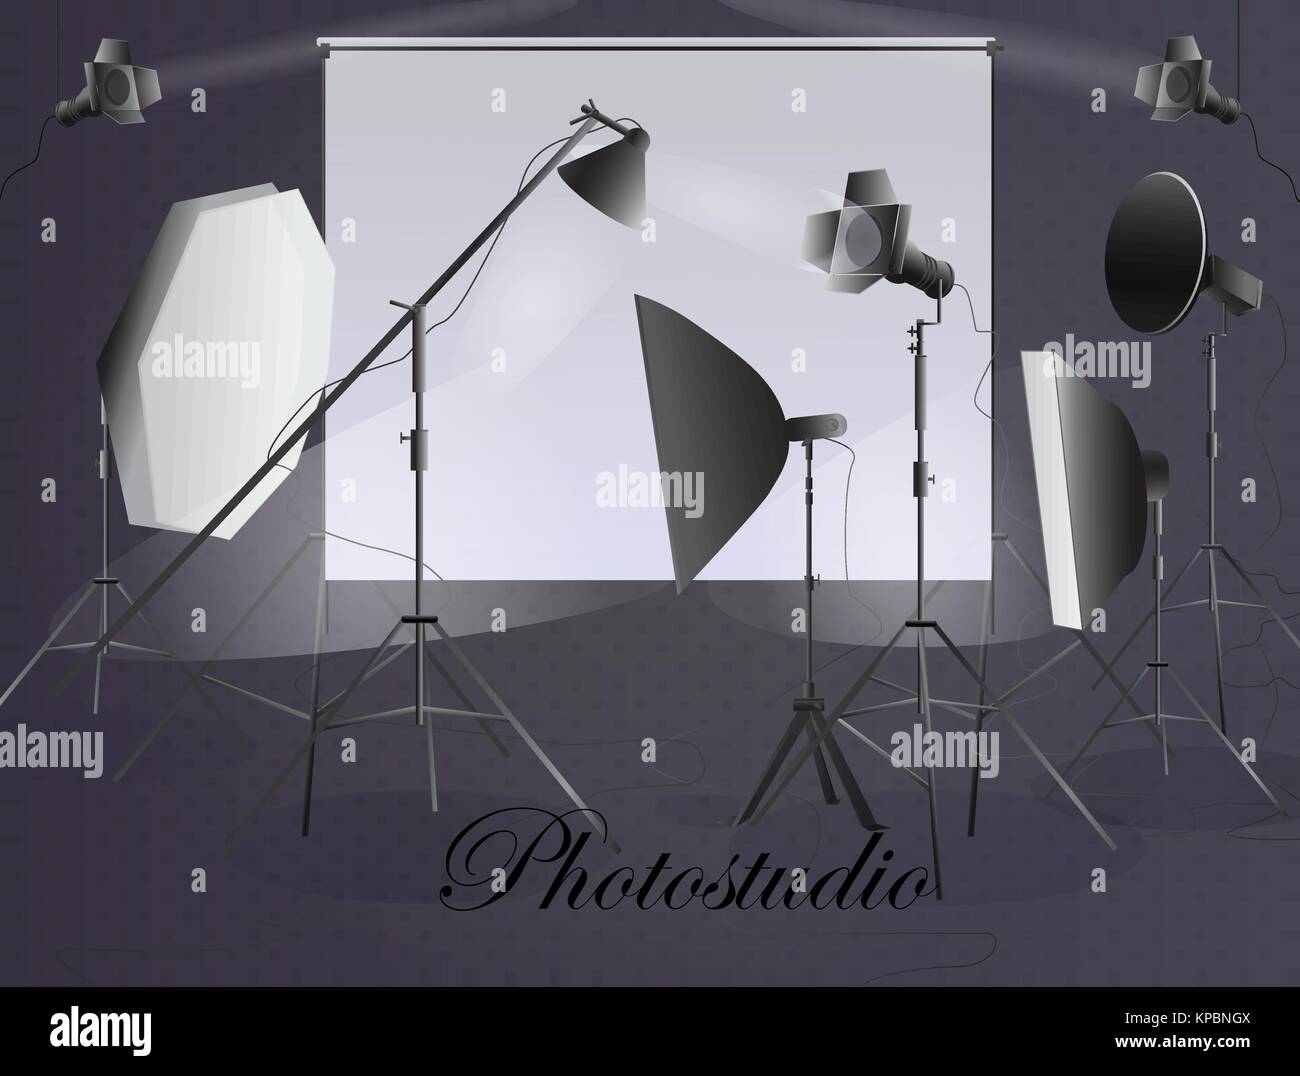 Photographic equipment. Photostudio. - Stock Image